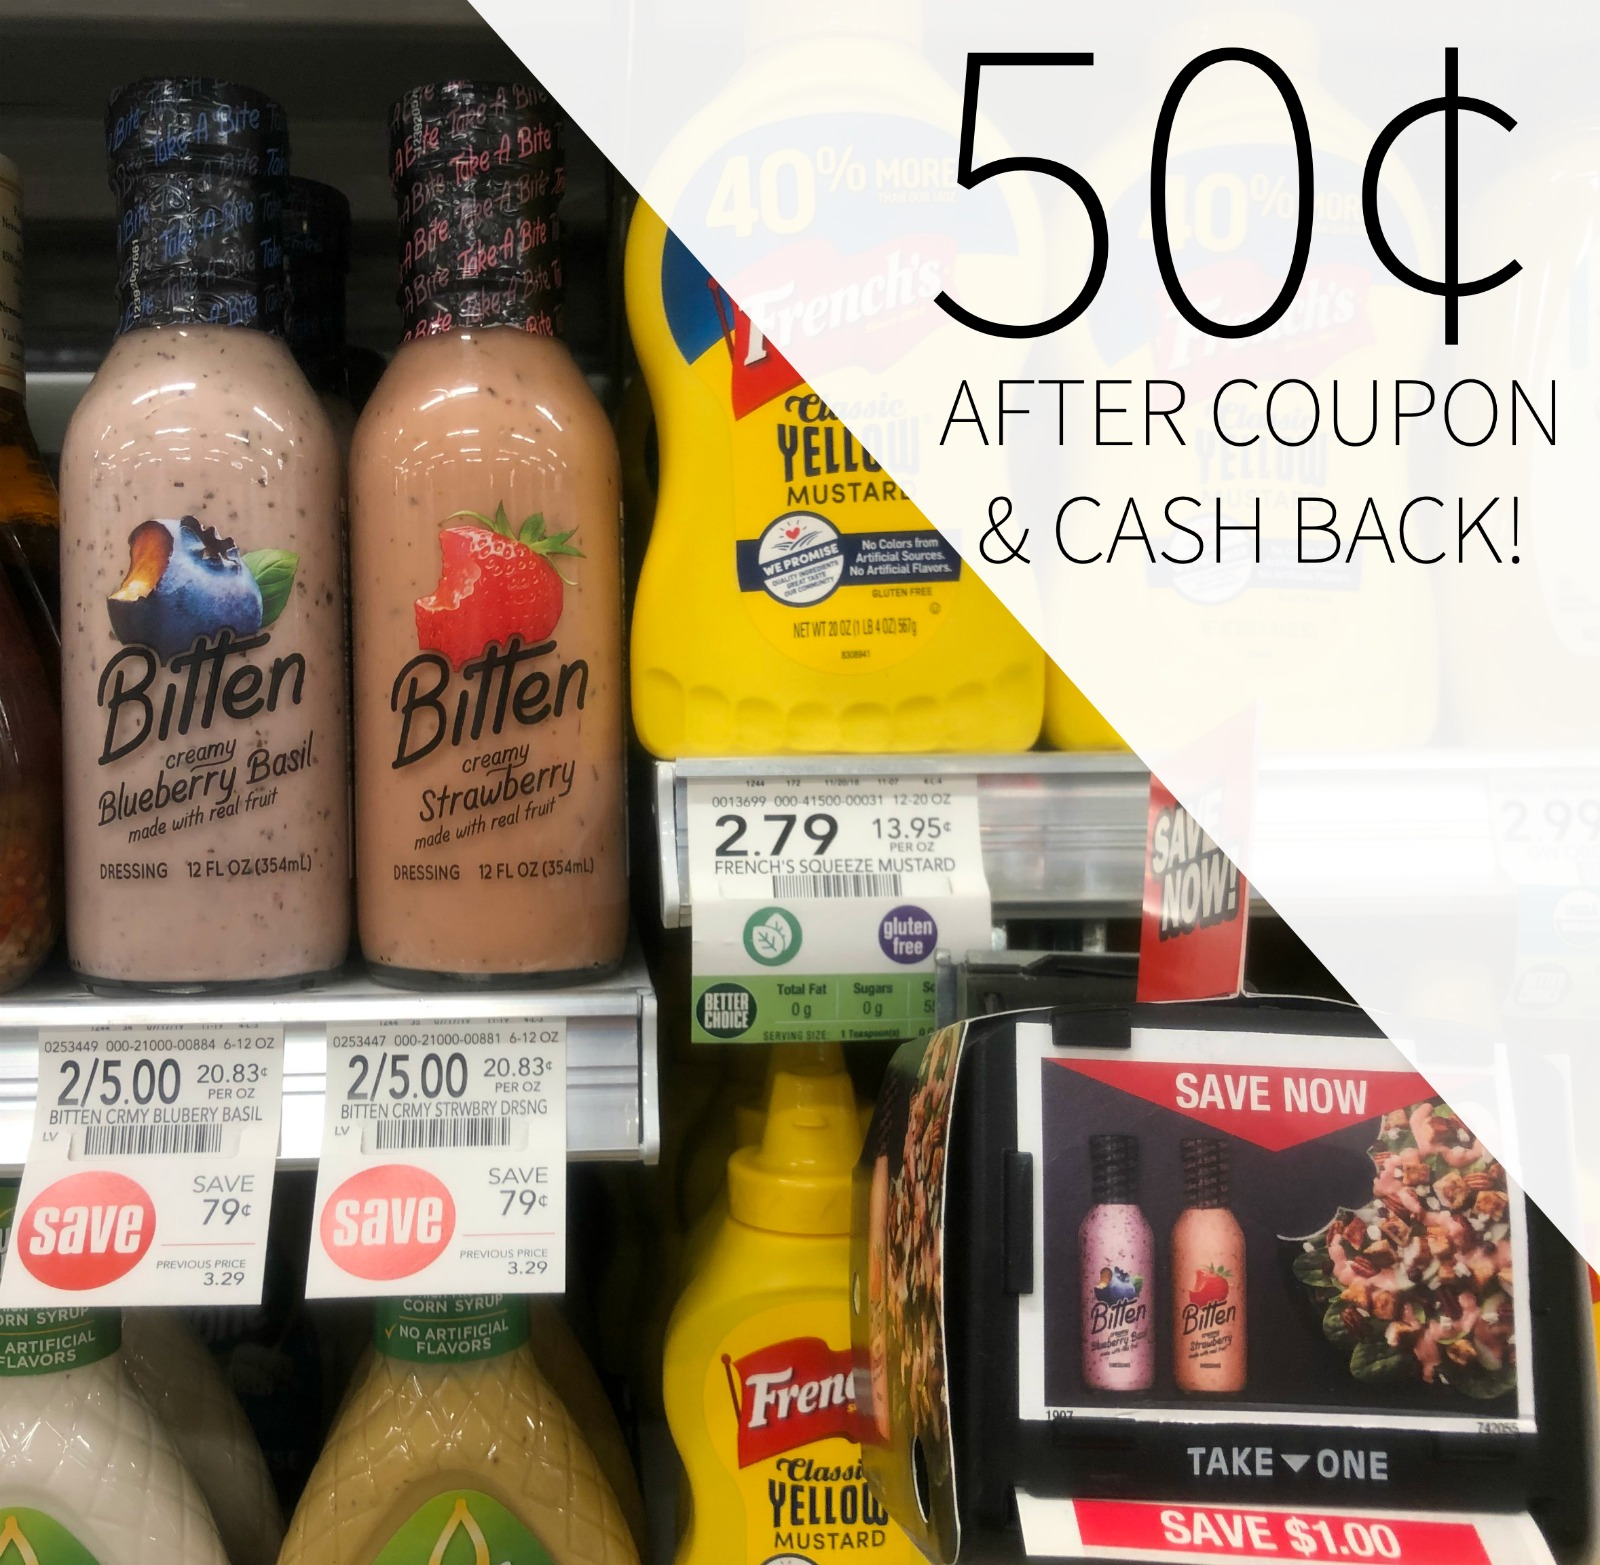 Save On NEW Bitten Dressing At Publix - Try Both Tasty Flavors! on I Heart Publix 1